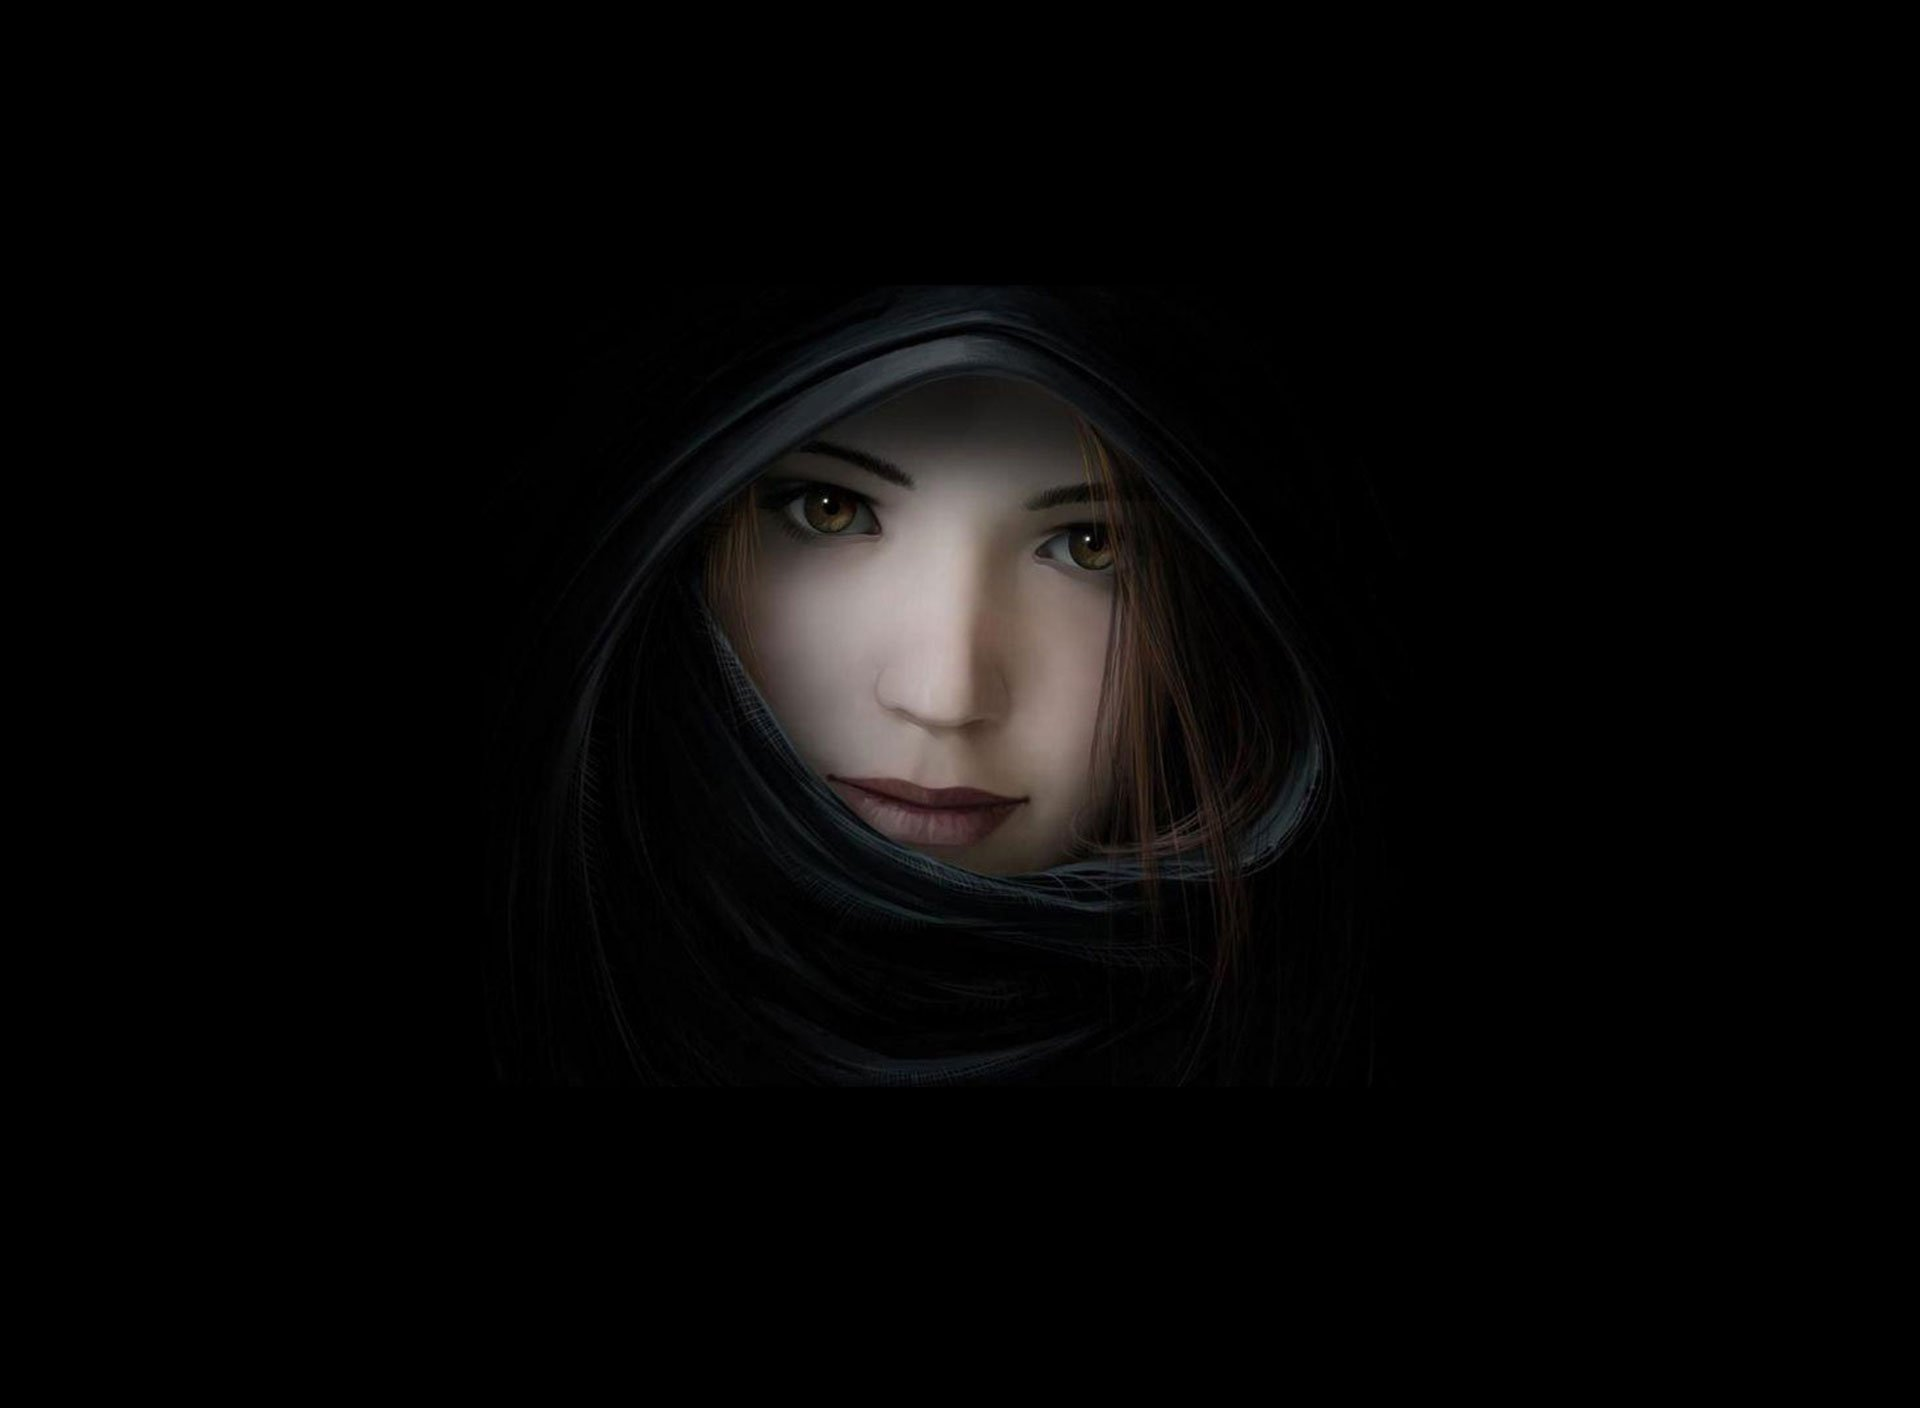 Tablet Lady in Black wallpapers Tablet Lady in Black backgrounds 1920x1408